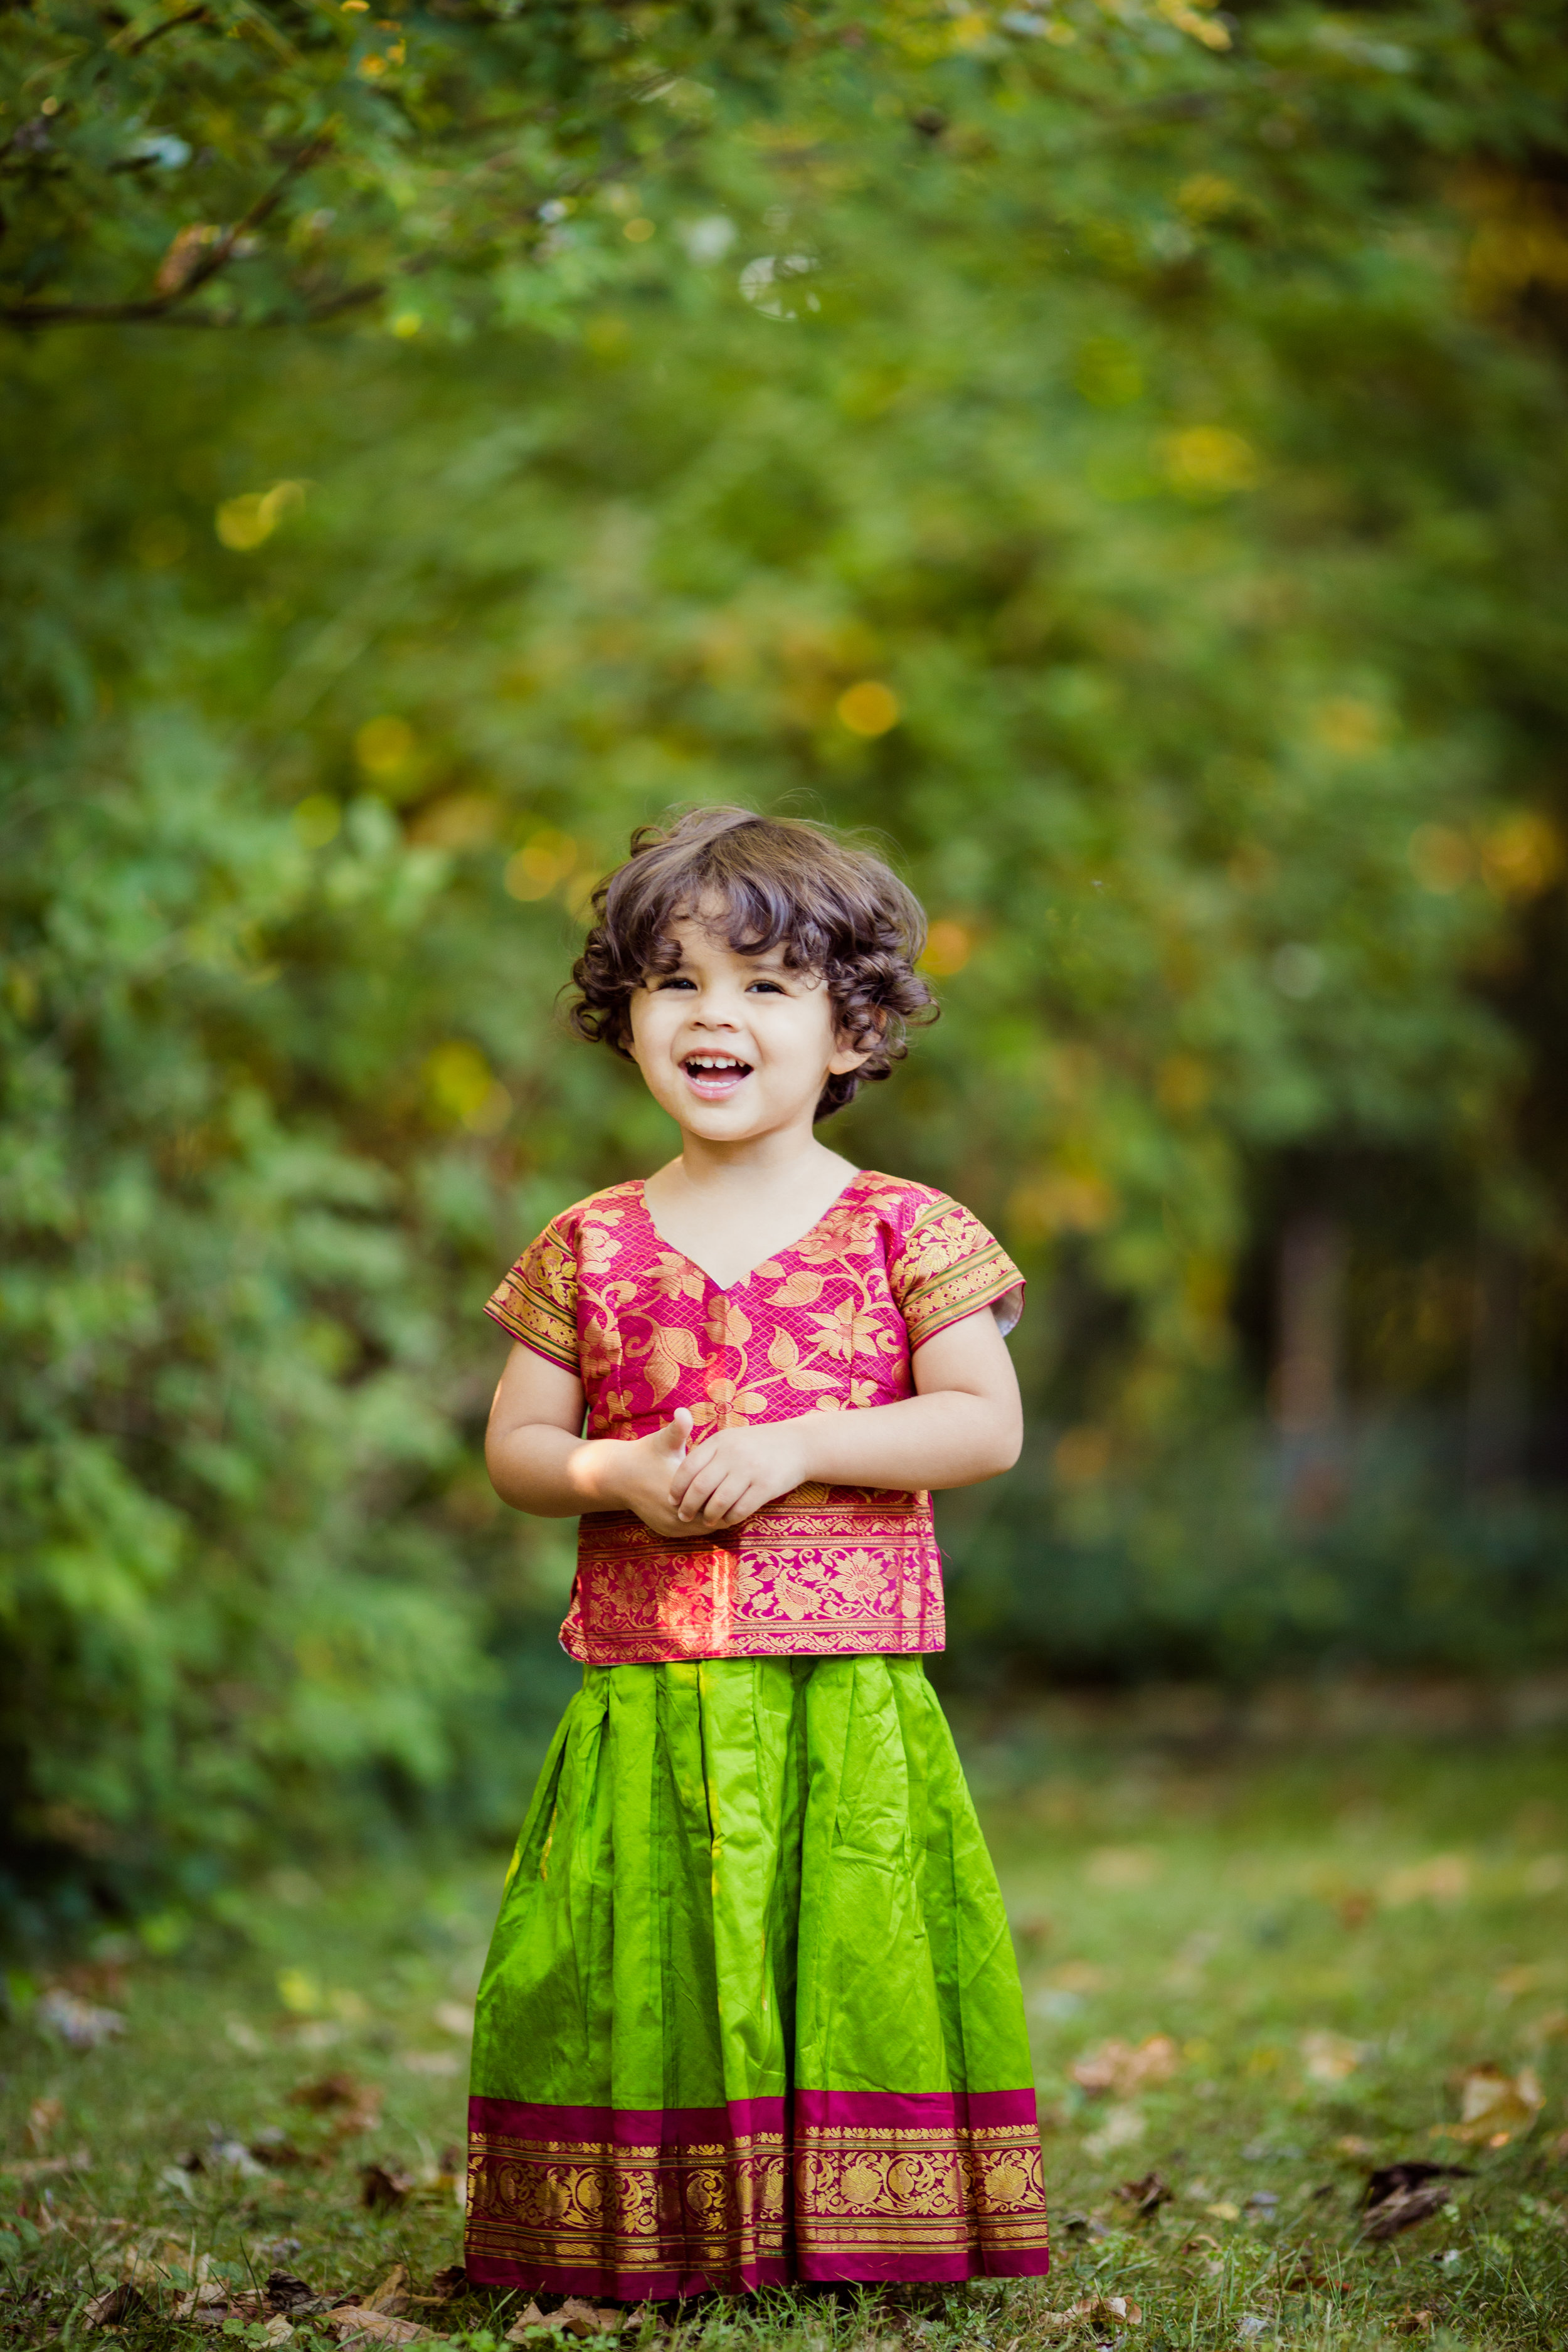 indian dress hindu toddler girl | cleveland heights child photography